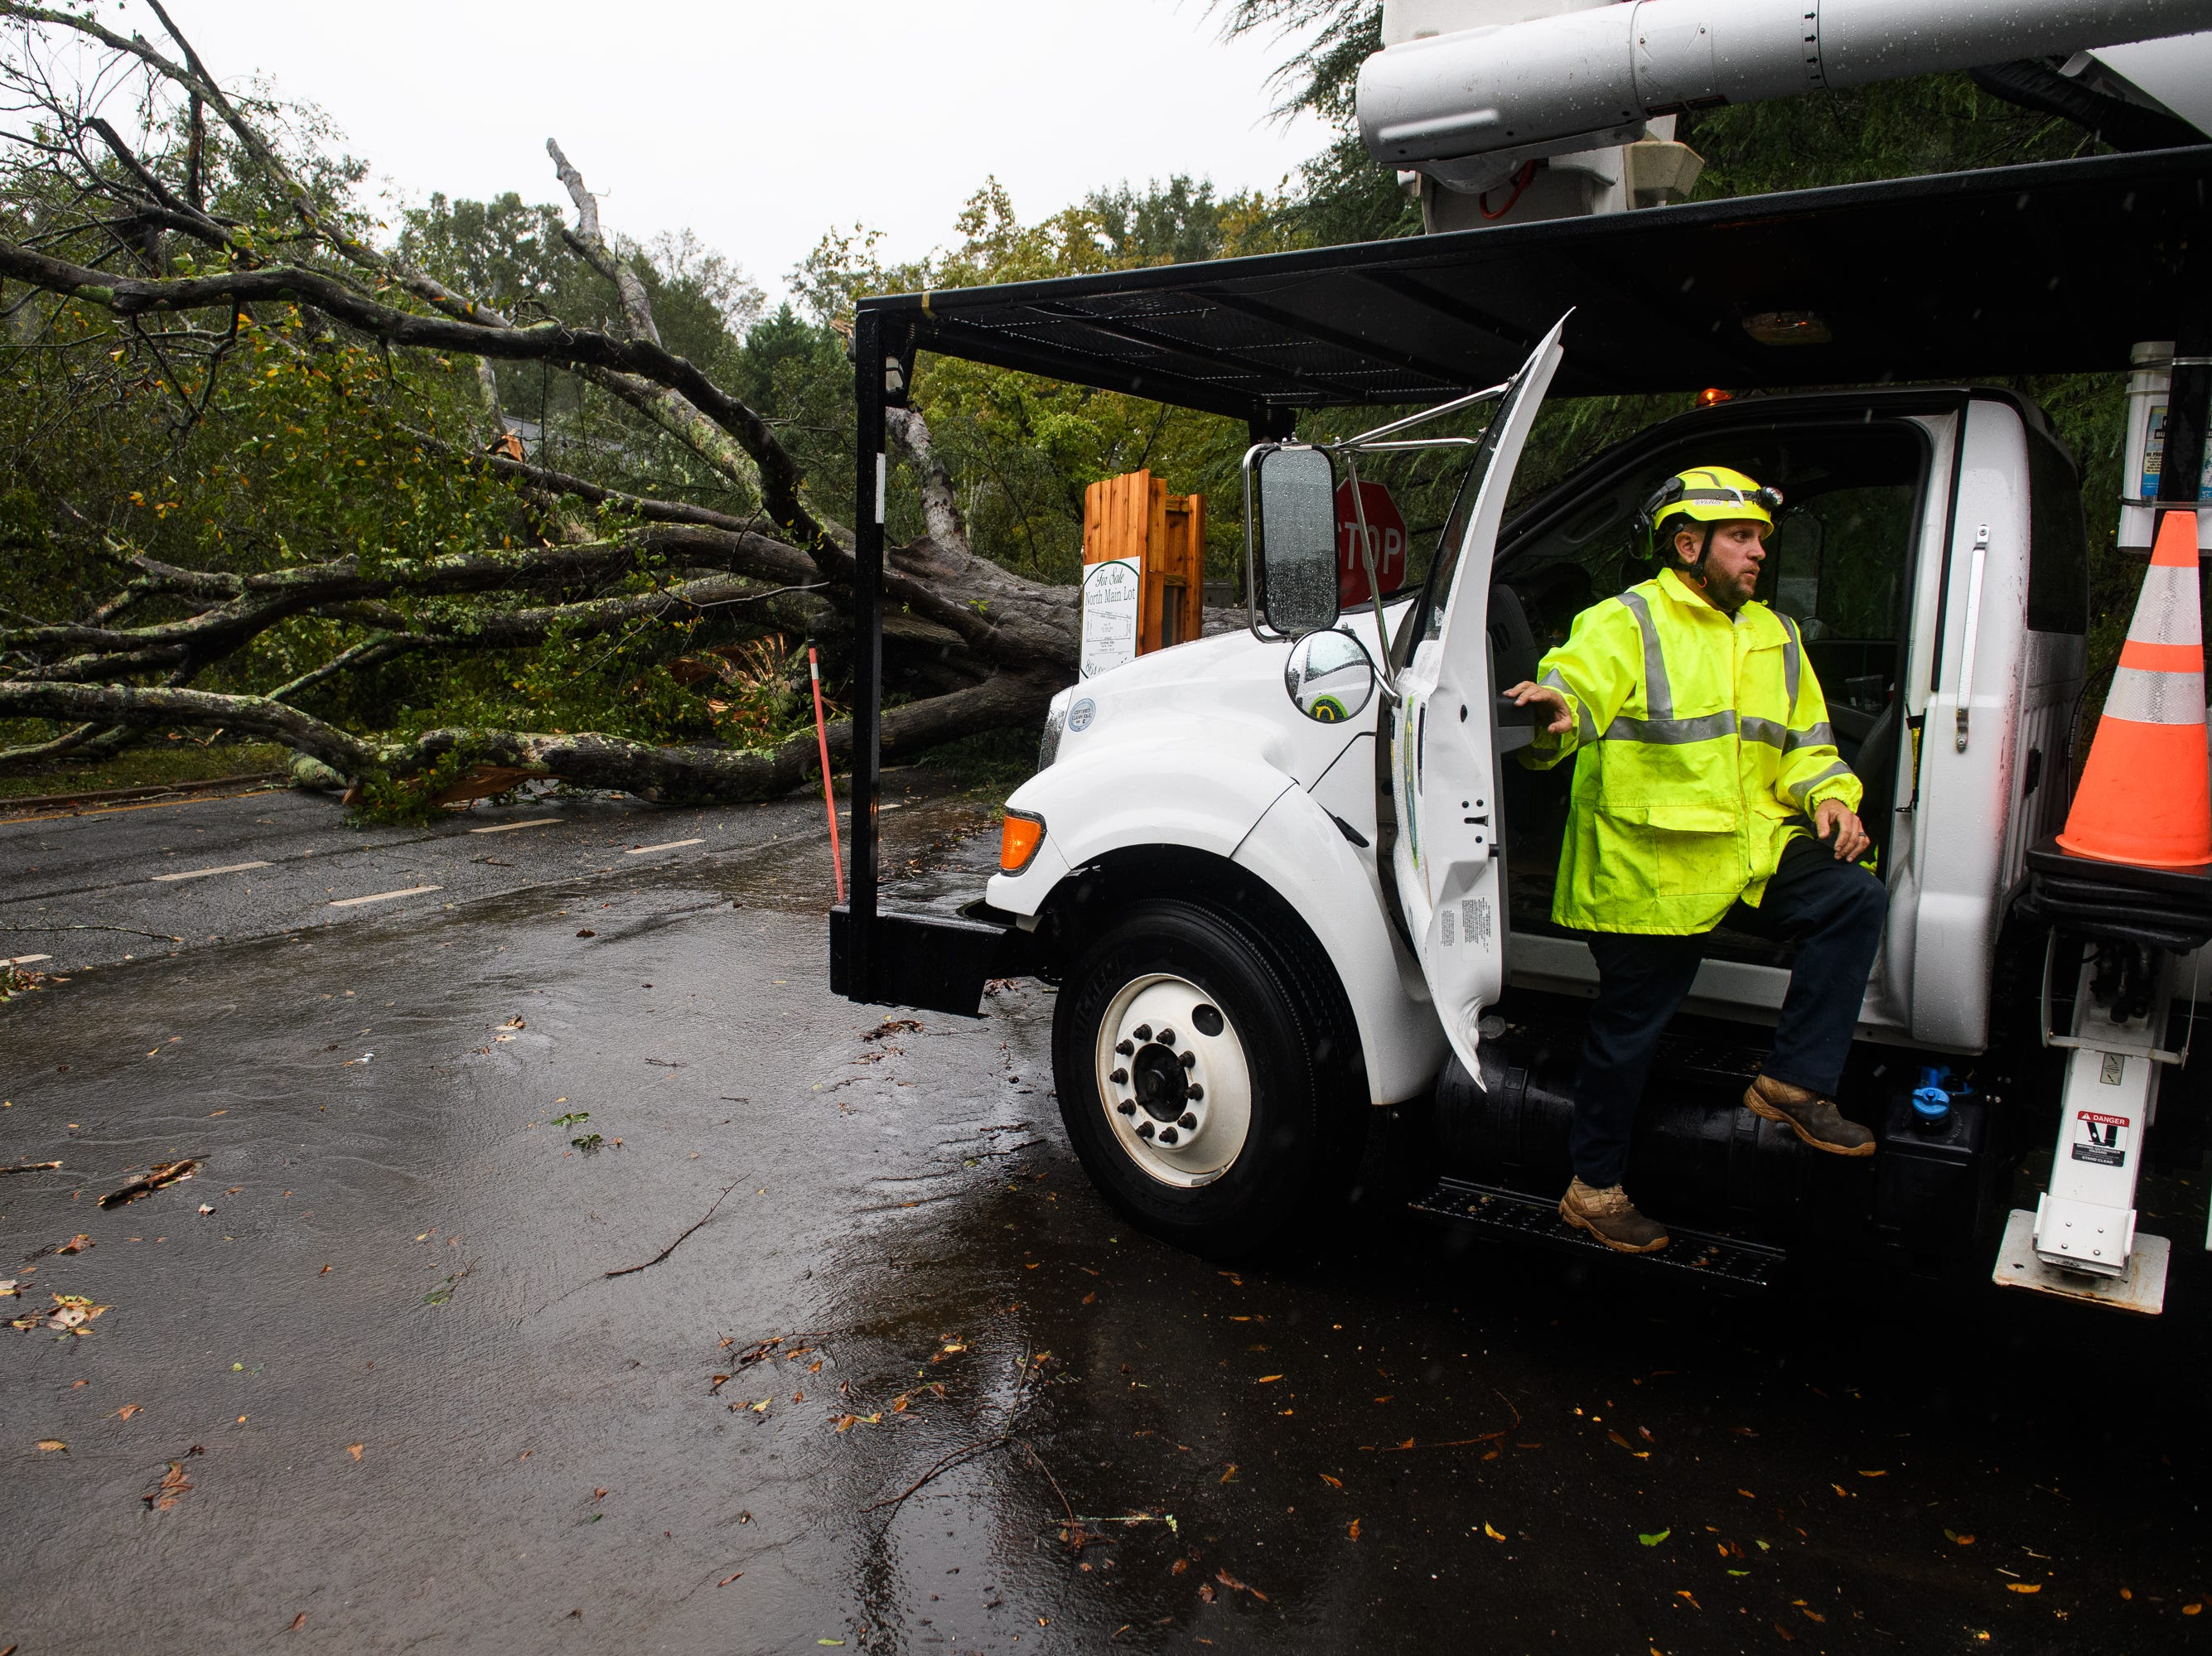 A worker responds to a down tree on North Main Street as Tropical Storm Michael hits the Greenville area on Thursday, Oct. 11, 2018.